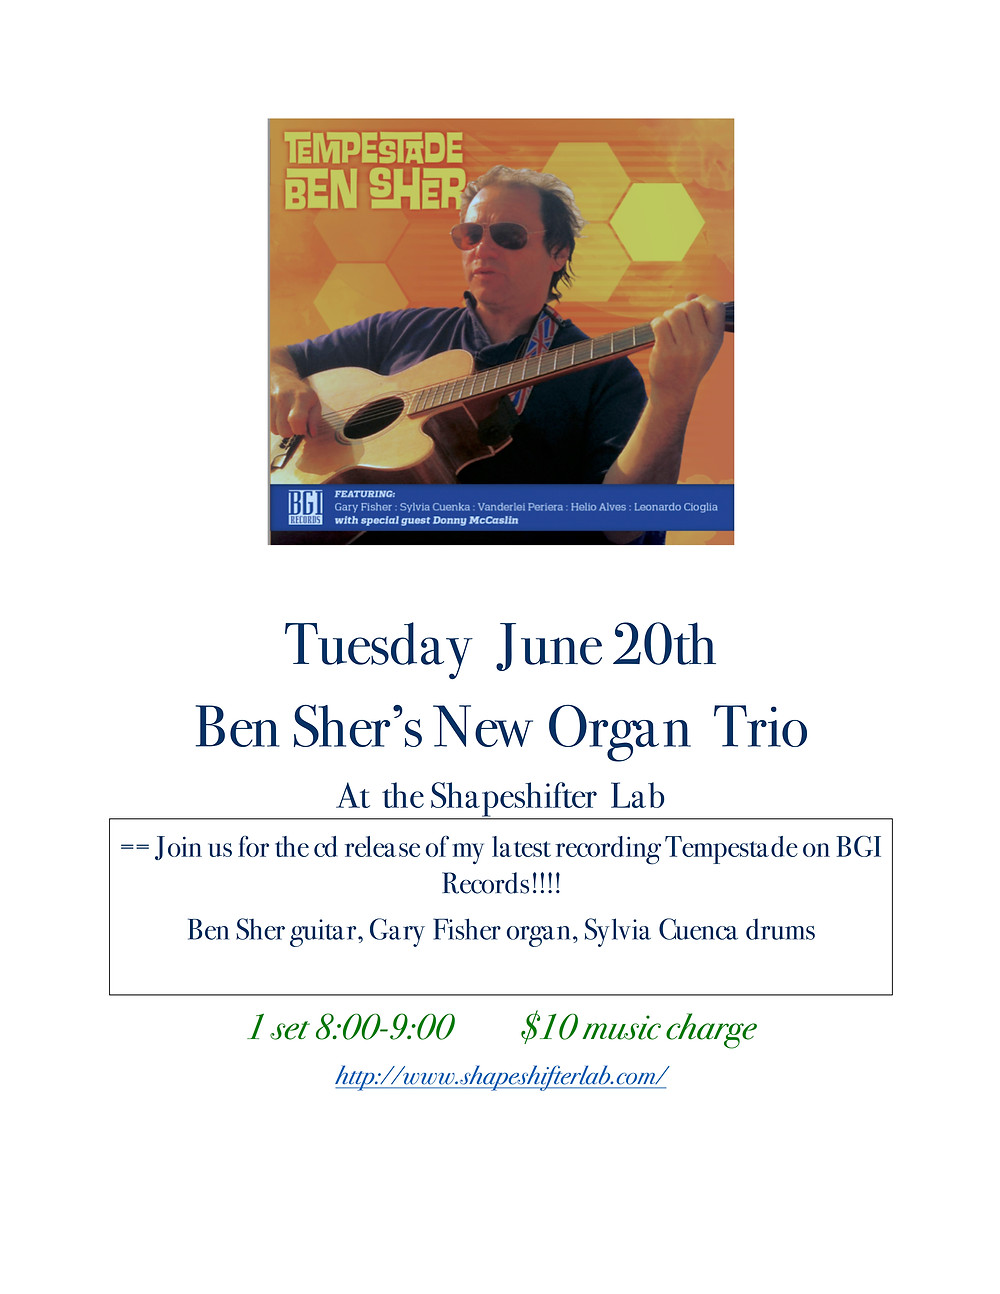 """proud to announce the official """"CD Release"""" concert feraturing my New Organ Trio!"""